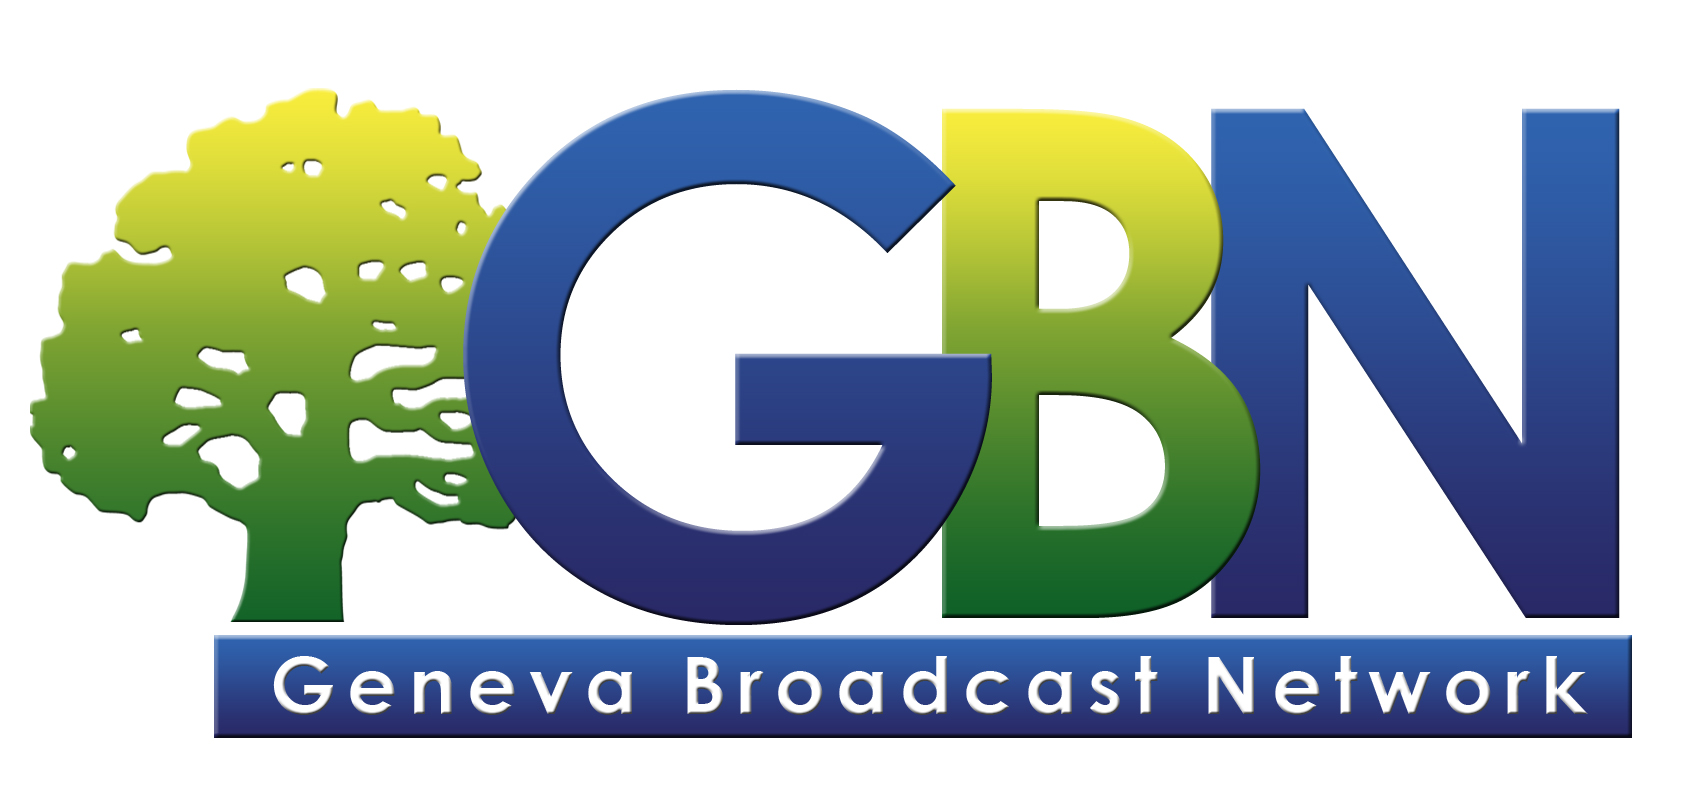 Geneva Broadcast Network